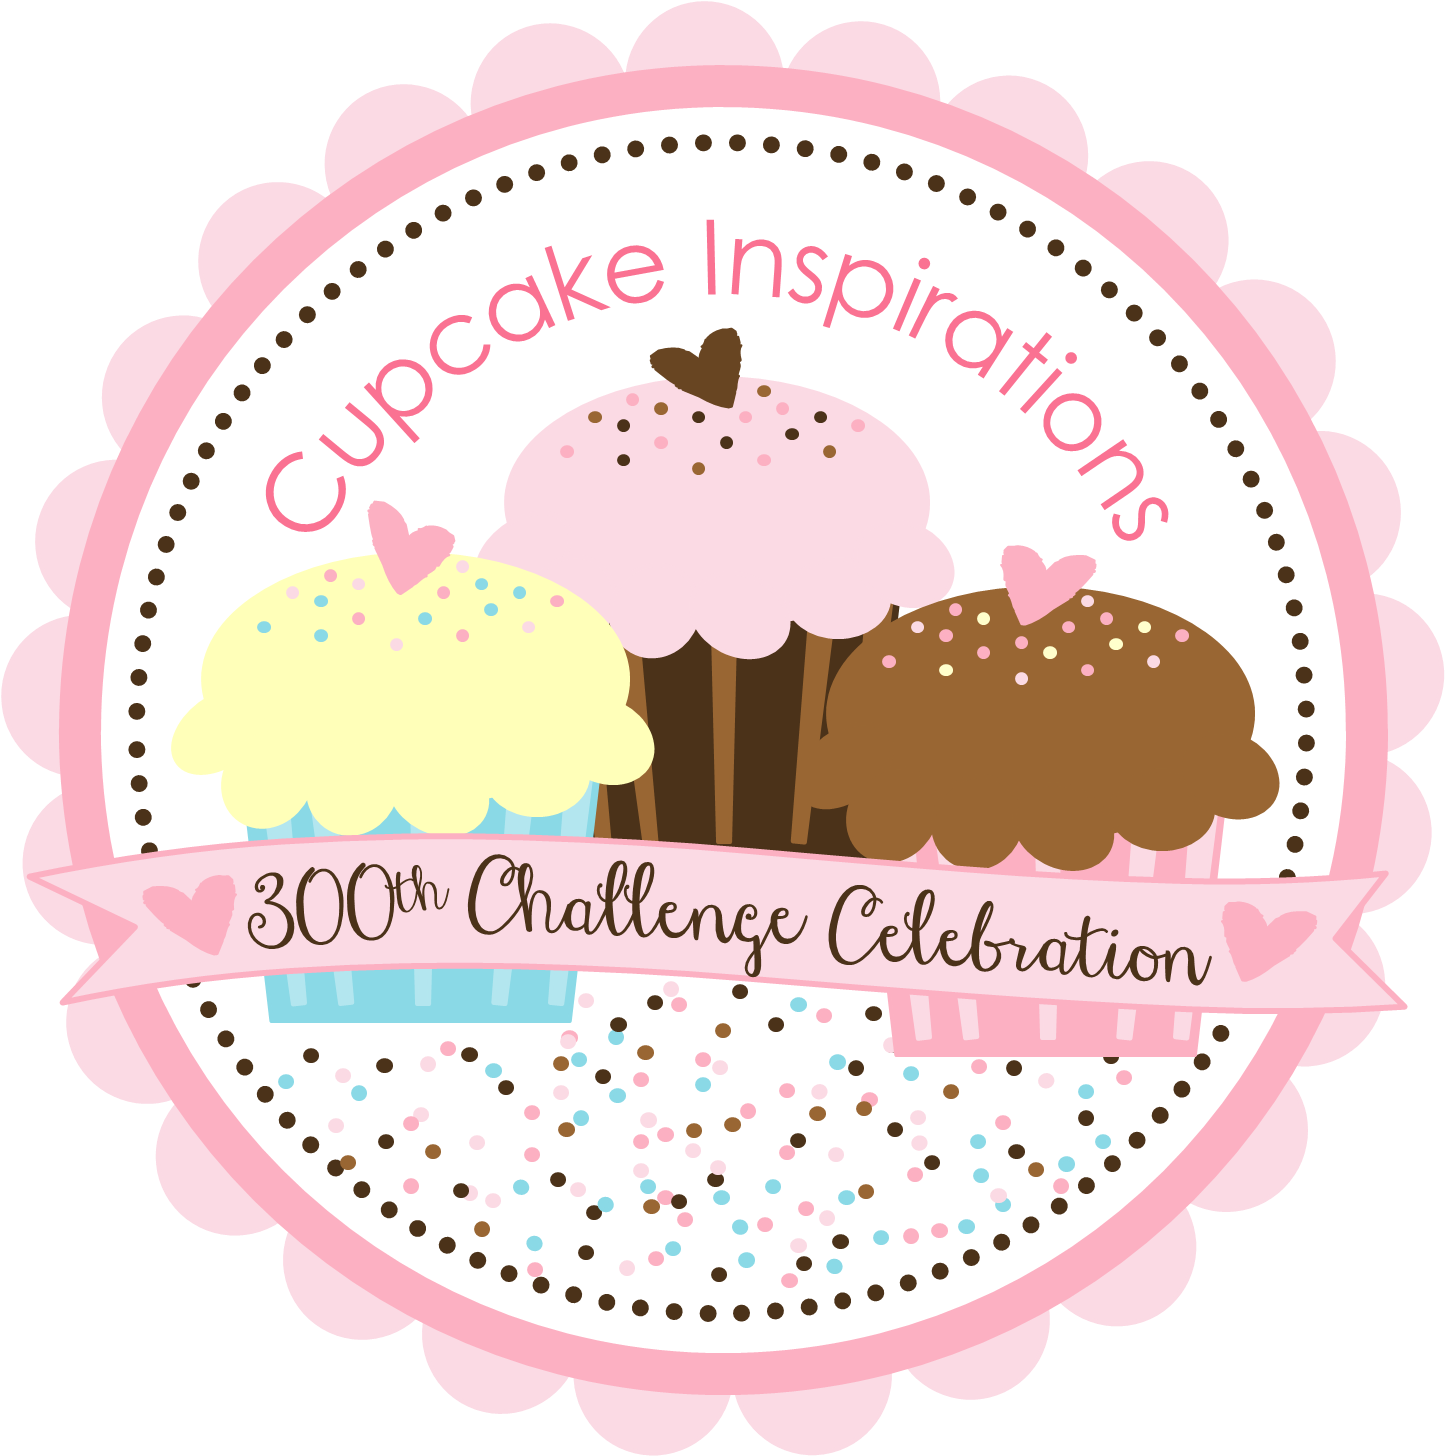 Cupcake Inspirations' 300th Birthday